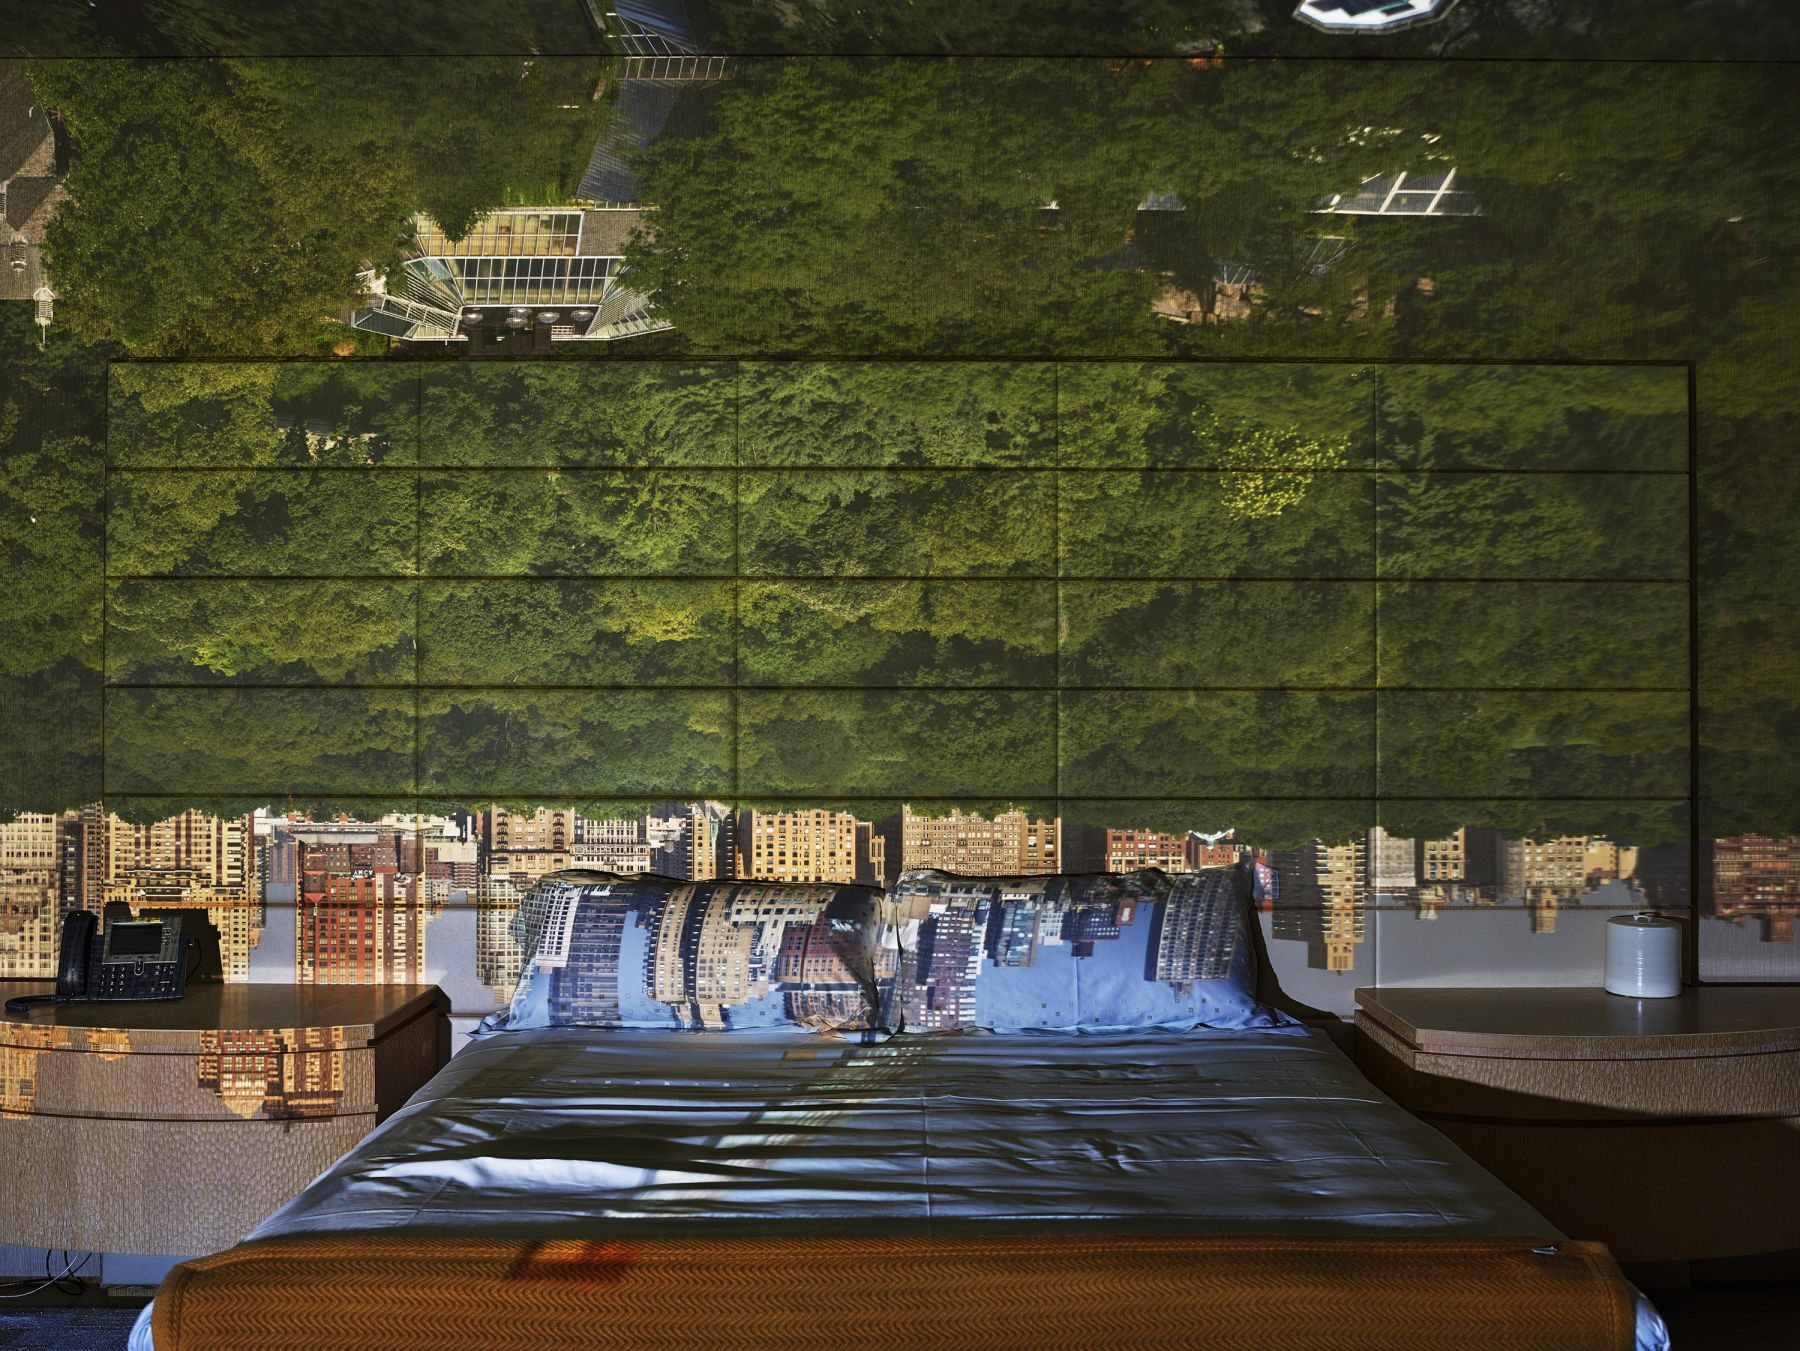 Abelardo Morell, Camera Obscura: View of Central Park Looking West in Bedroom, Summer, 2018